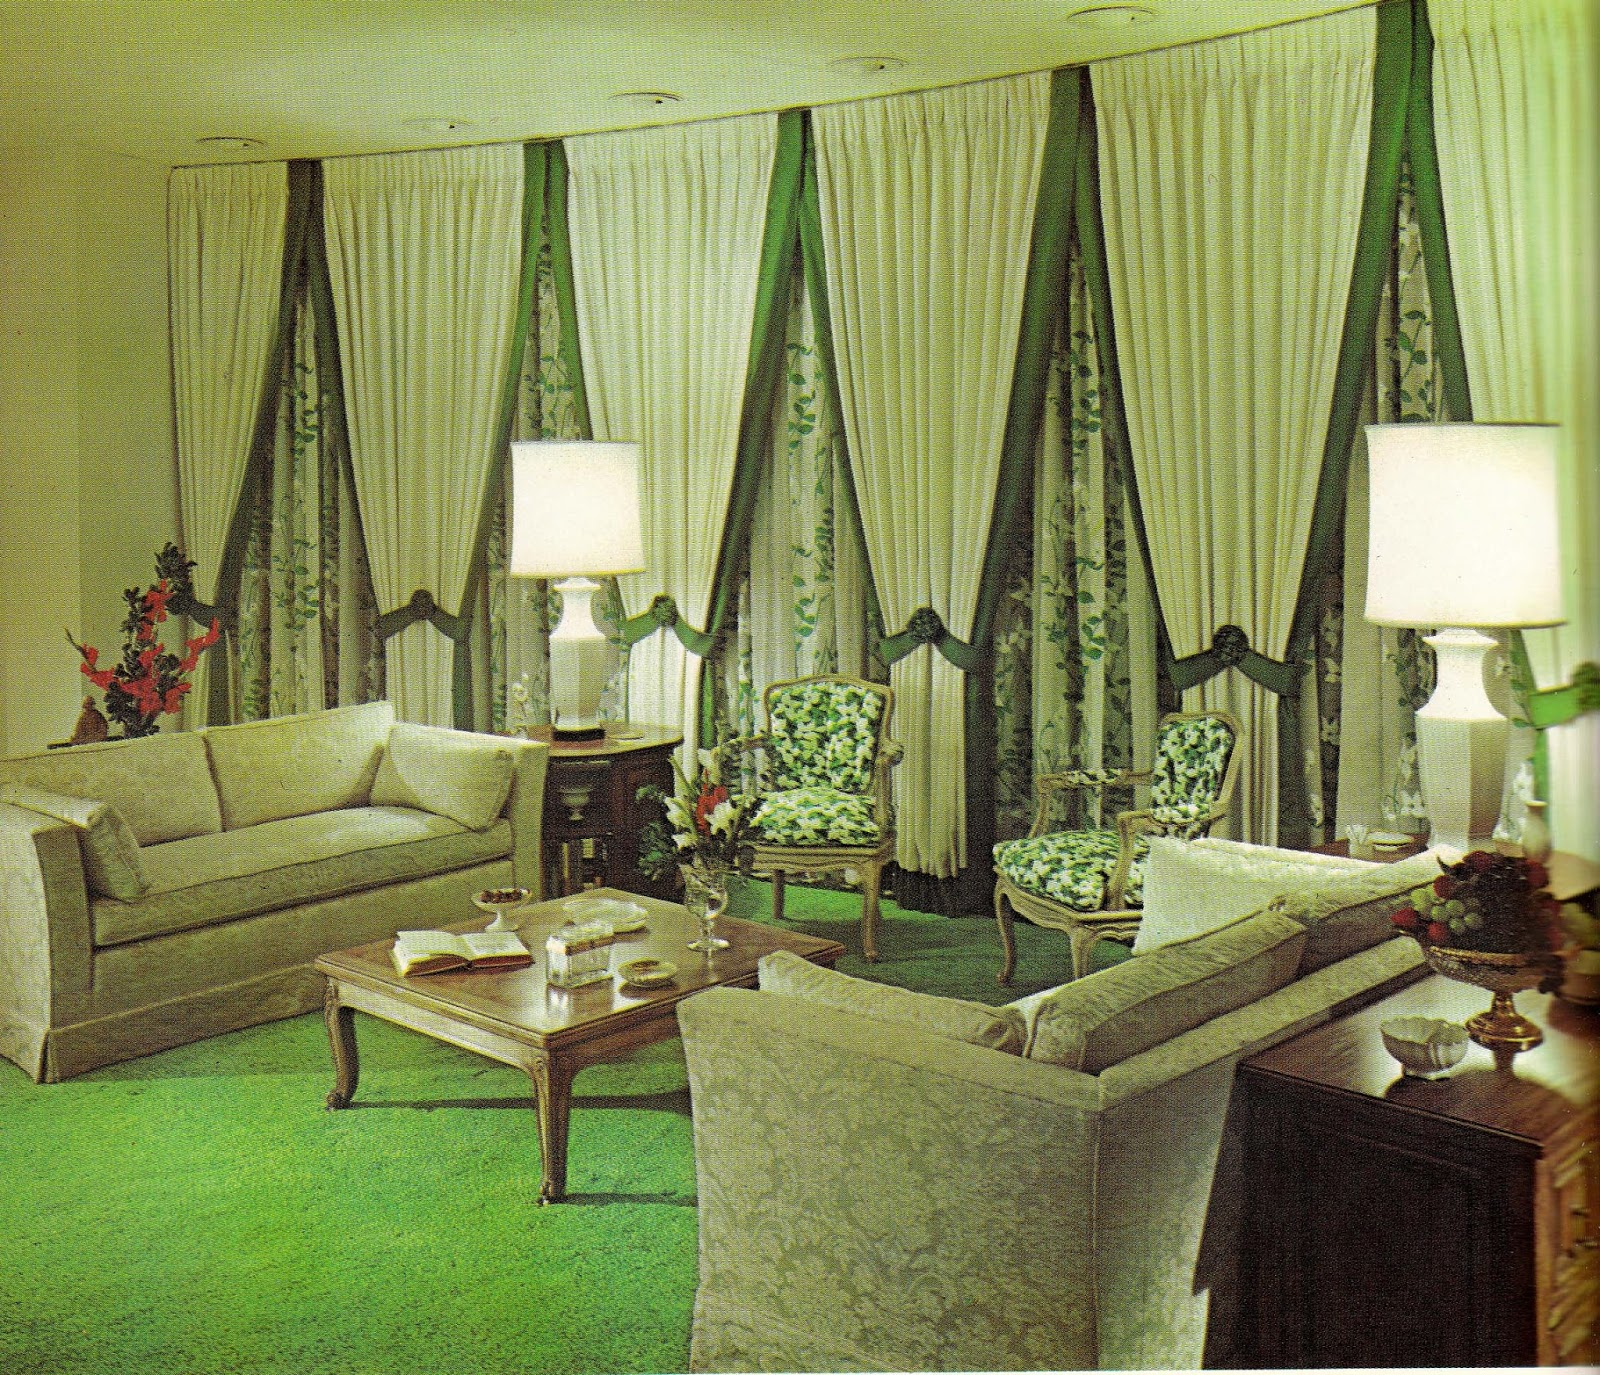 Home Interior Design Decor: 1960s Interior Décor: The Decade Of Psychedelia Gave Rise